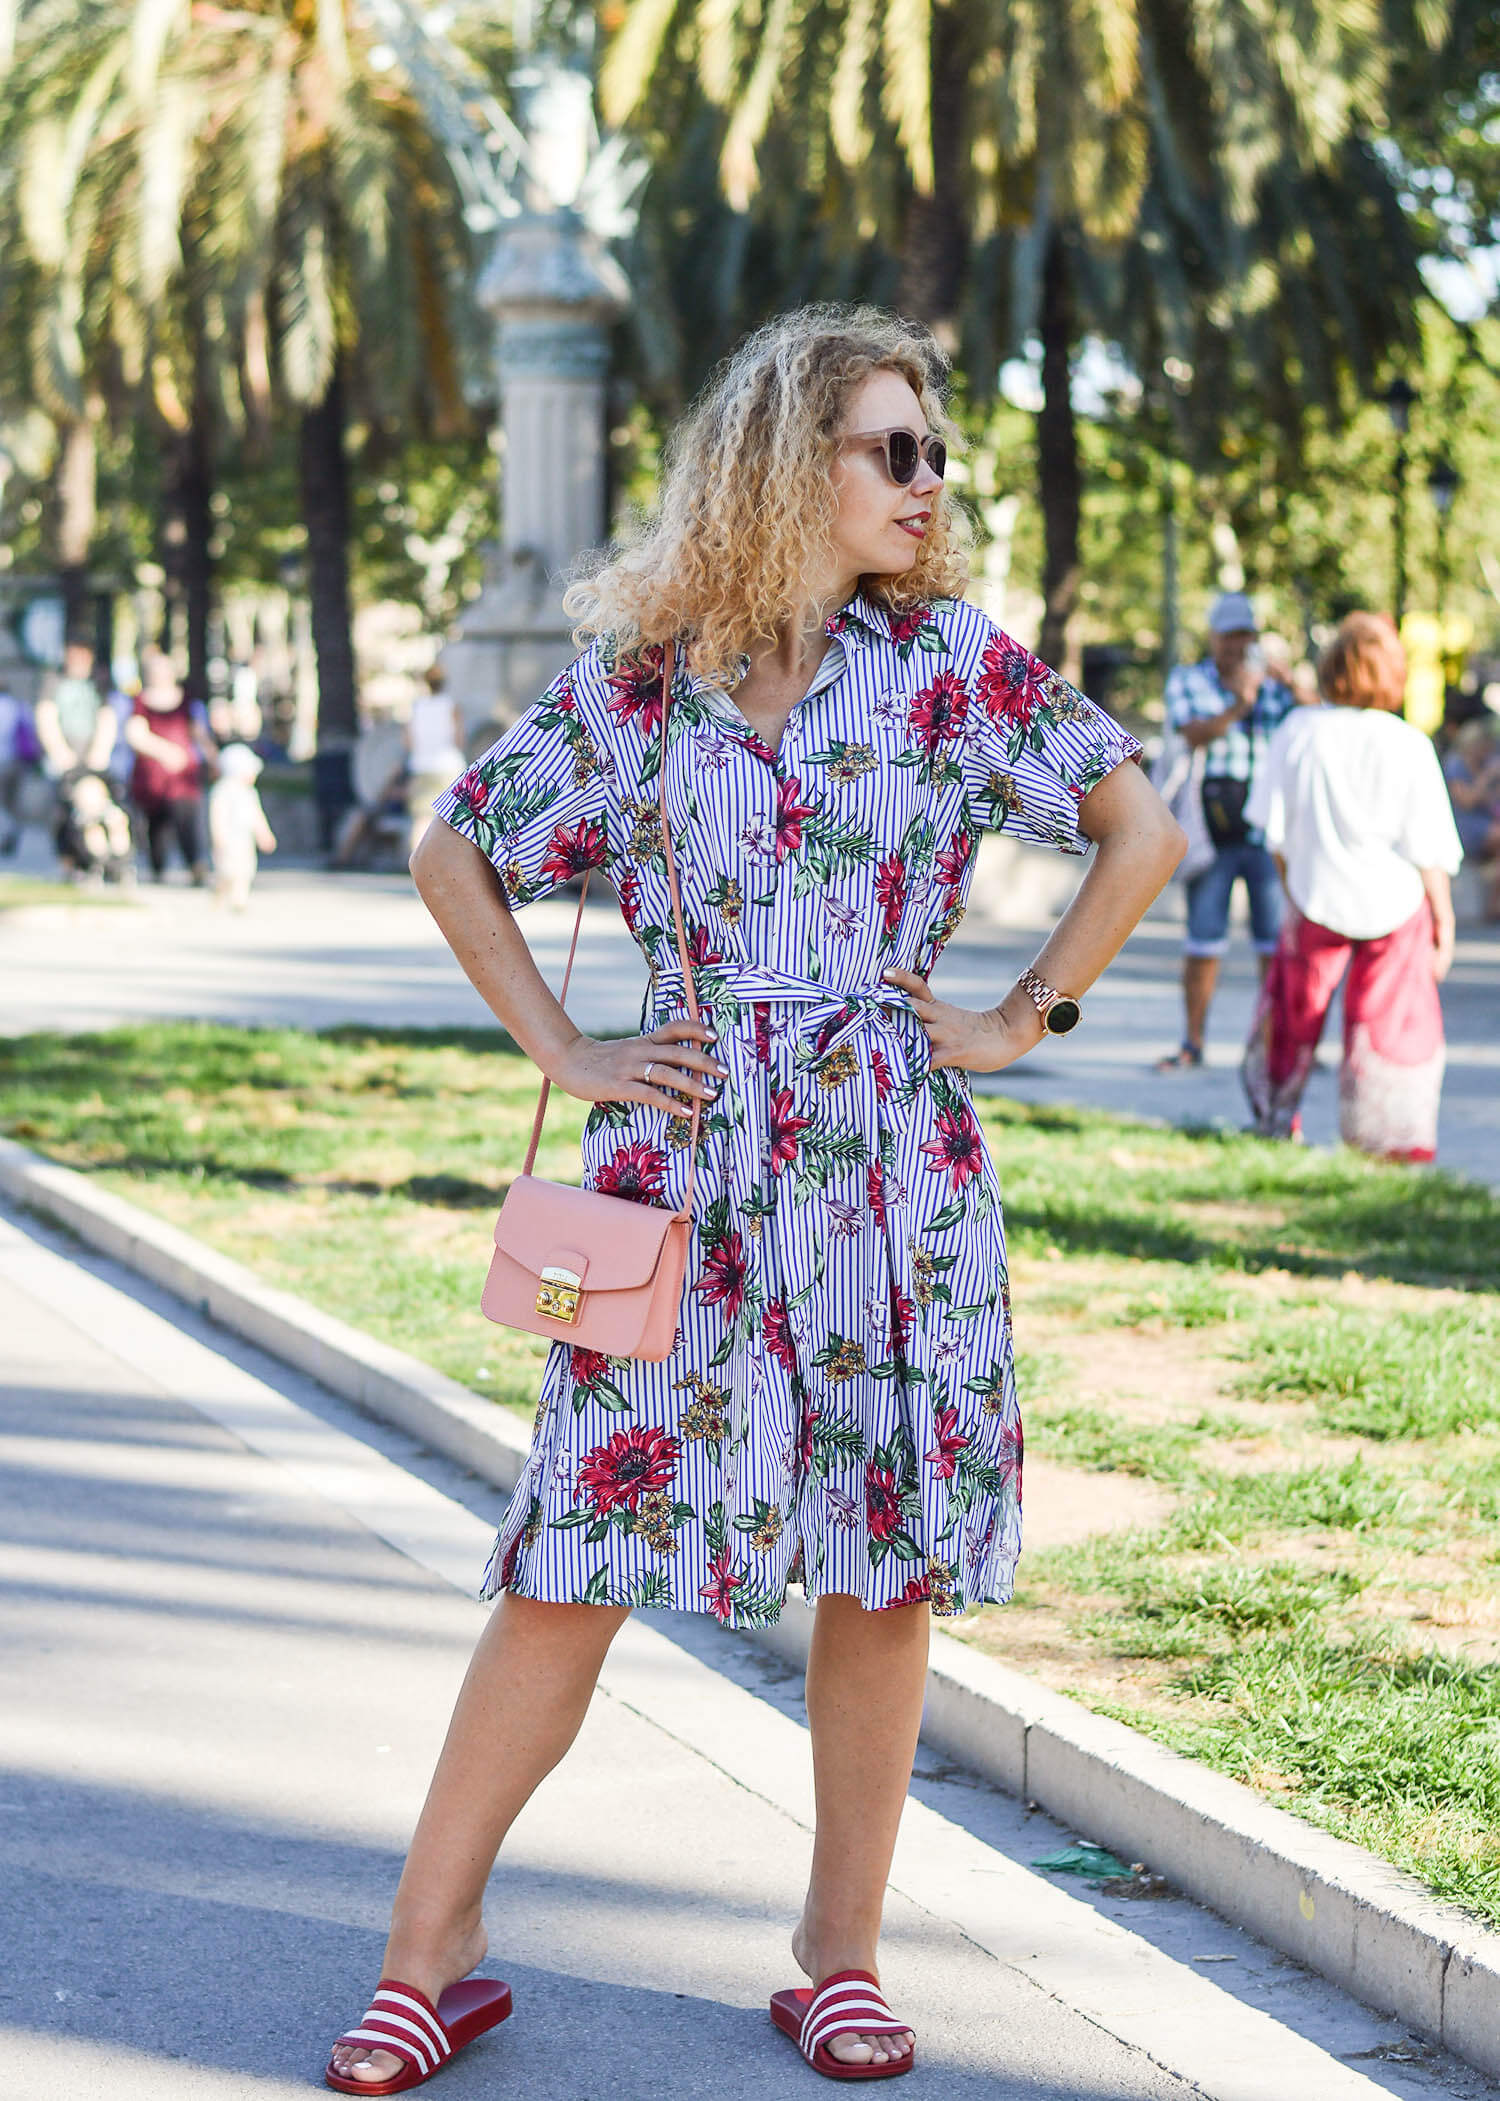 Outfit-Zara-Blouse-Dress-Furla-Bag-and-Adiletten-in-Barcelona-kationette-fashionblogger-travelblogger-honeymoon-2017